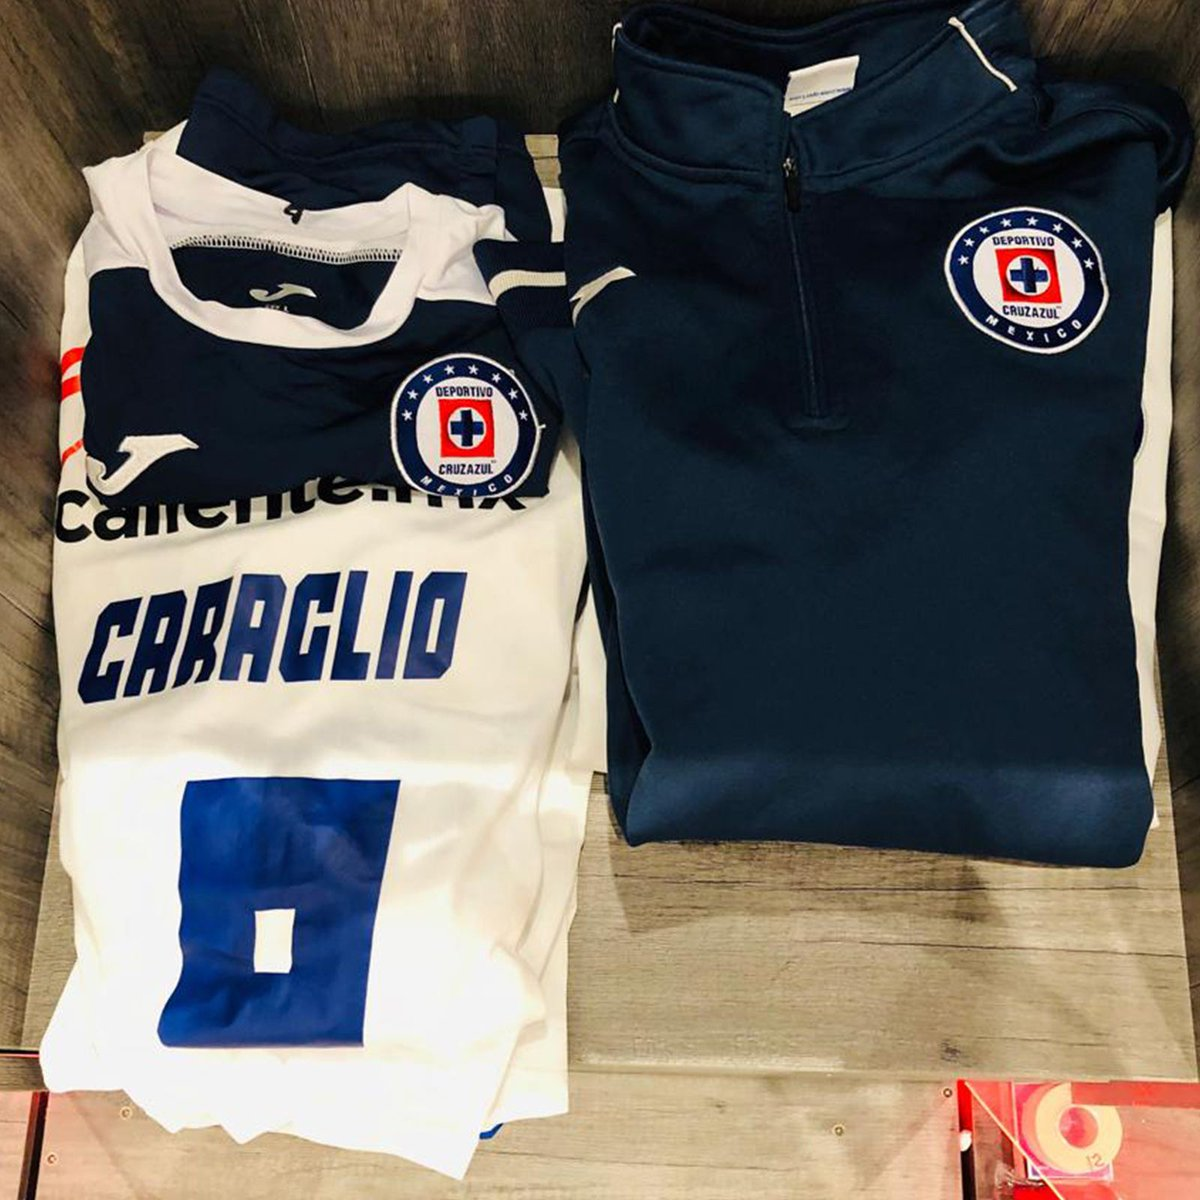 CRUZ AZUL FC ®'s photo on Estadio Jalisco